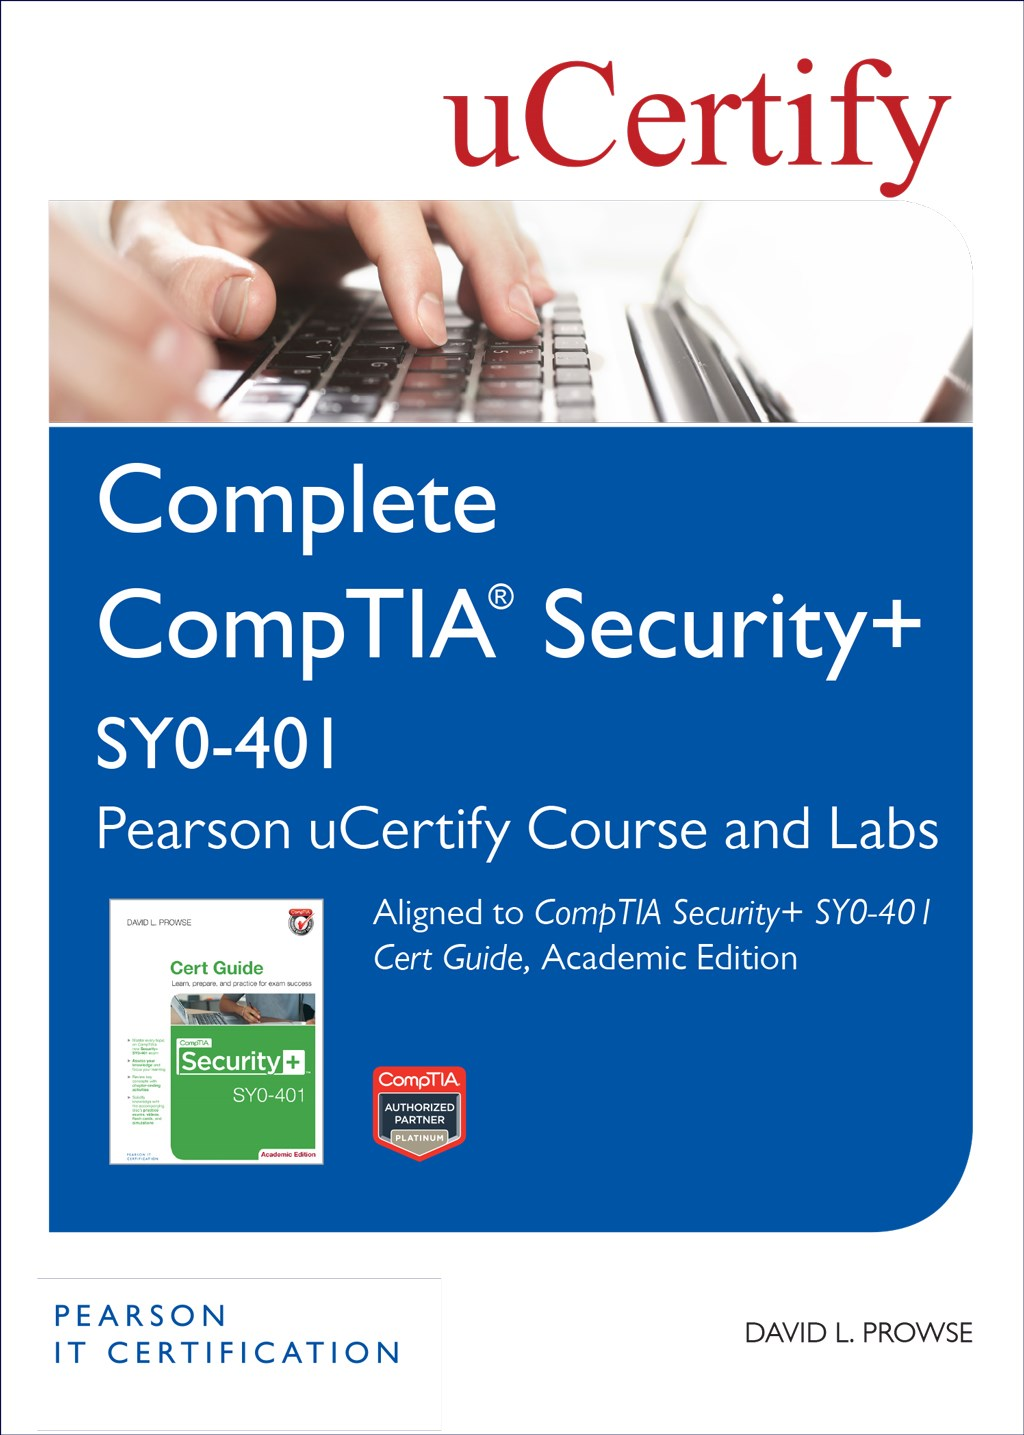 CompTIA Security+ SY0-401 Pearson uCertify Course and Labs